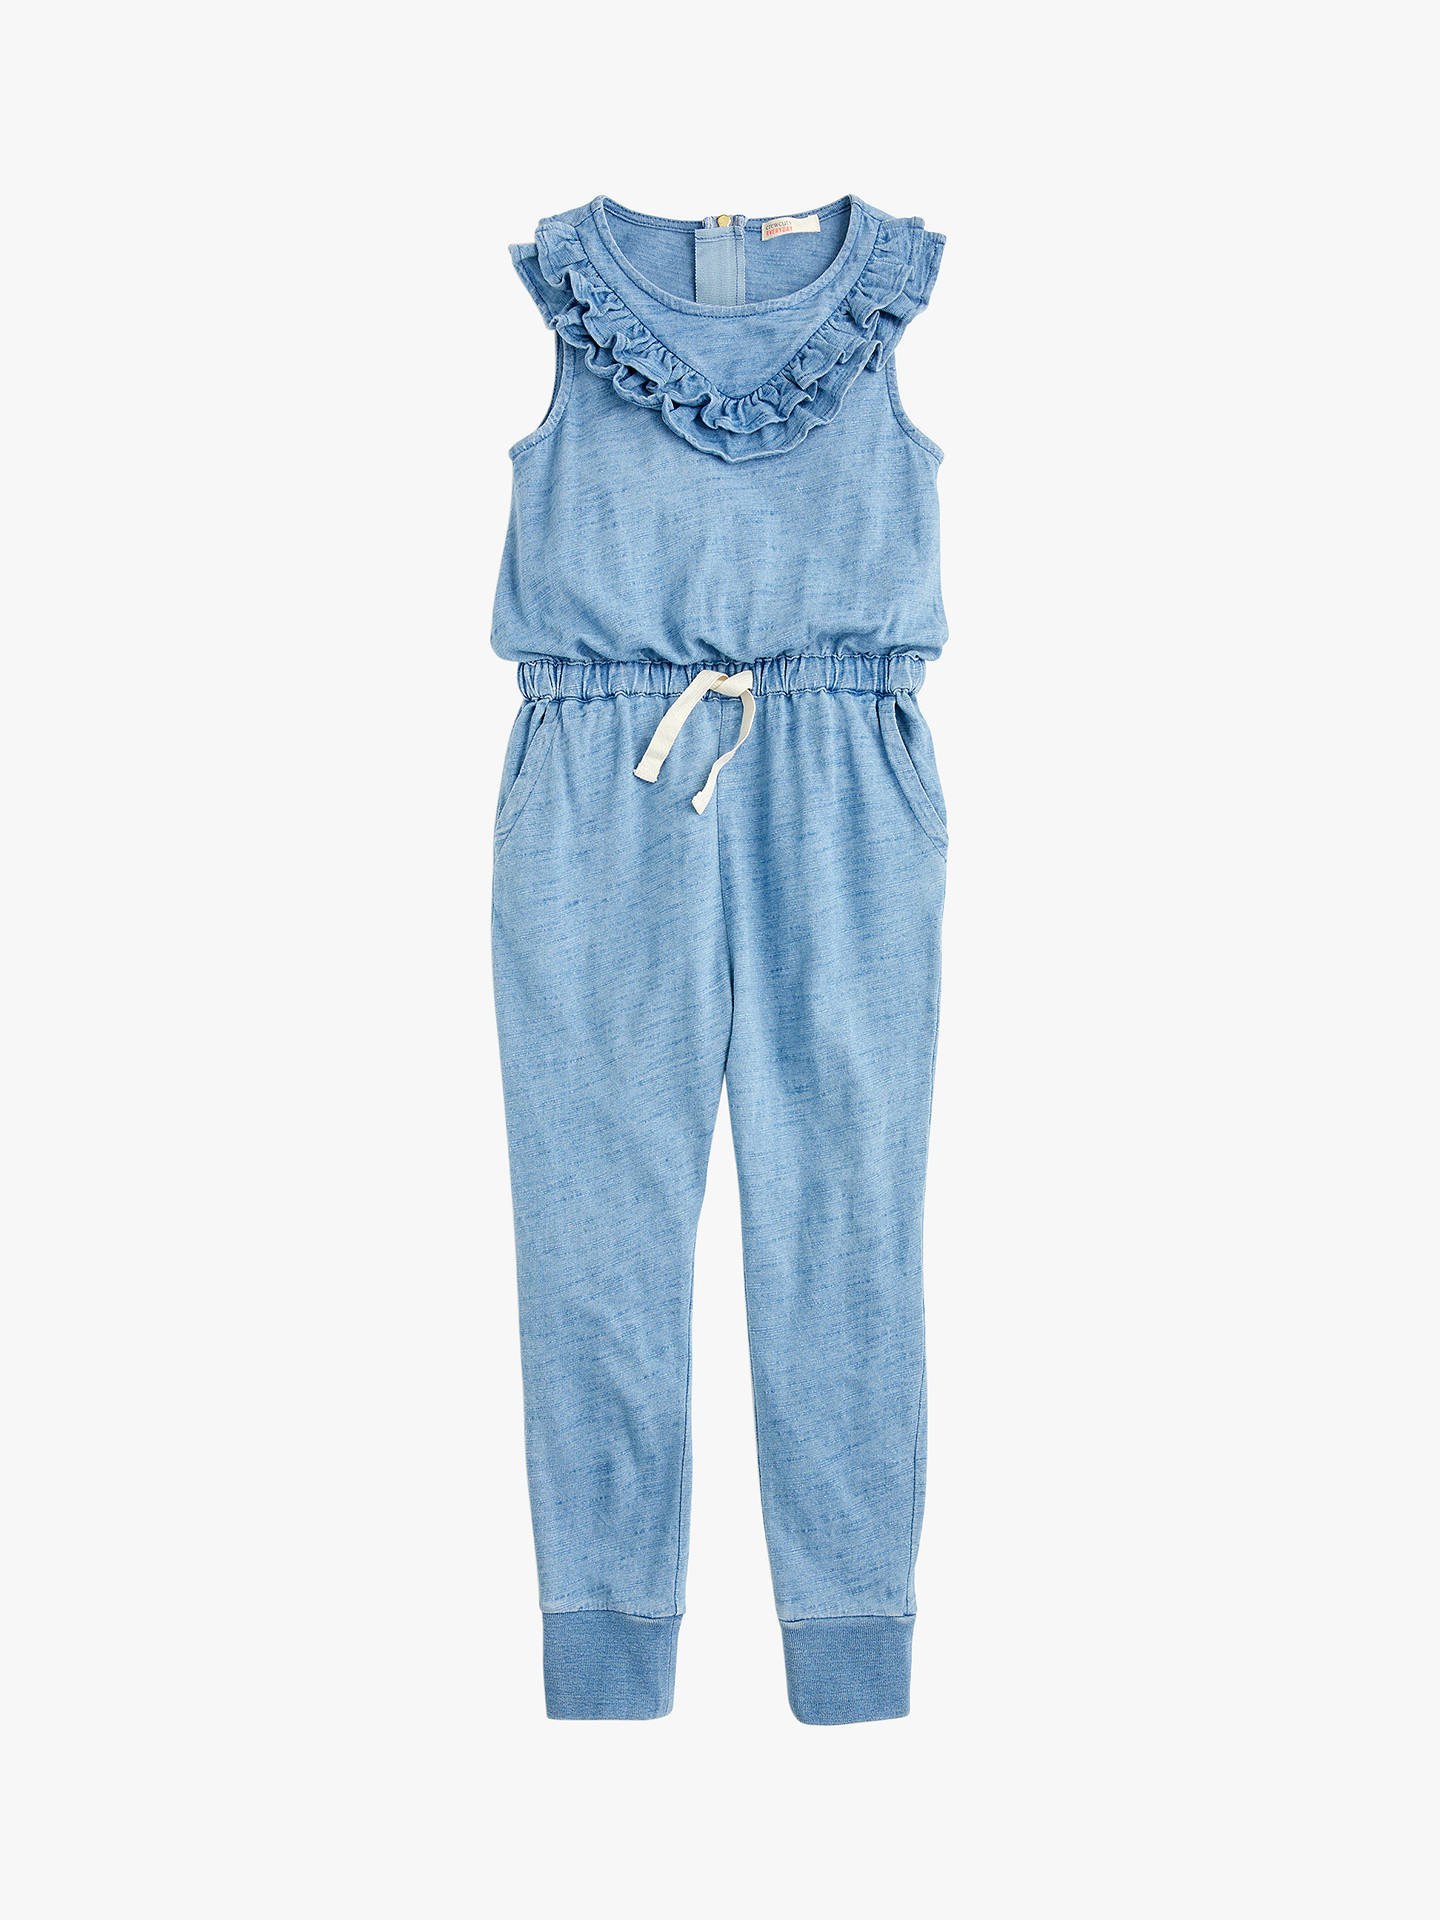 b9346a5fae7f7 Buy crewcuts by J.Crew Girls' Ruffle Jumpsuit, Blue, 16 years Online ...